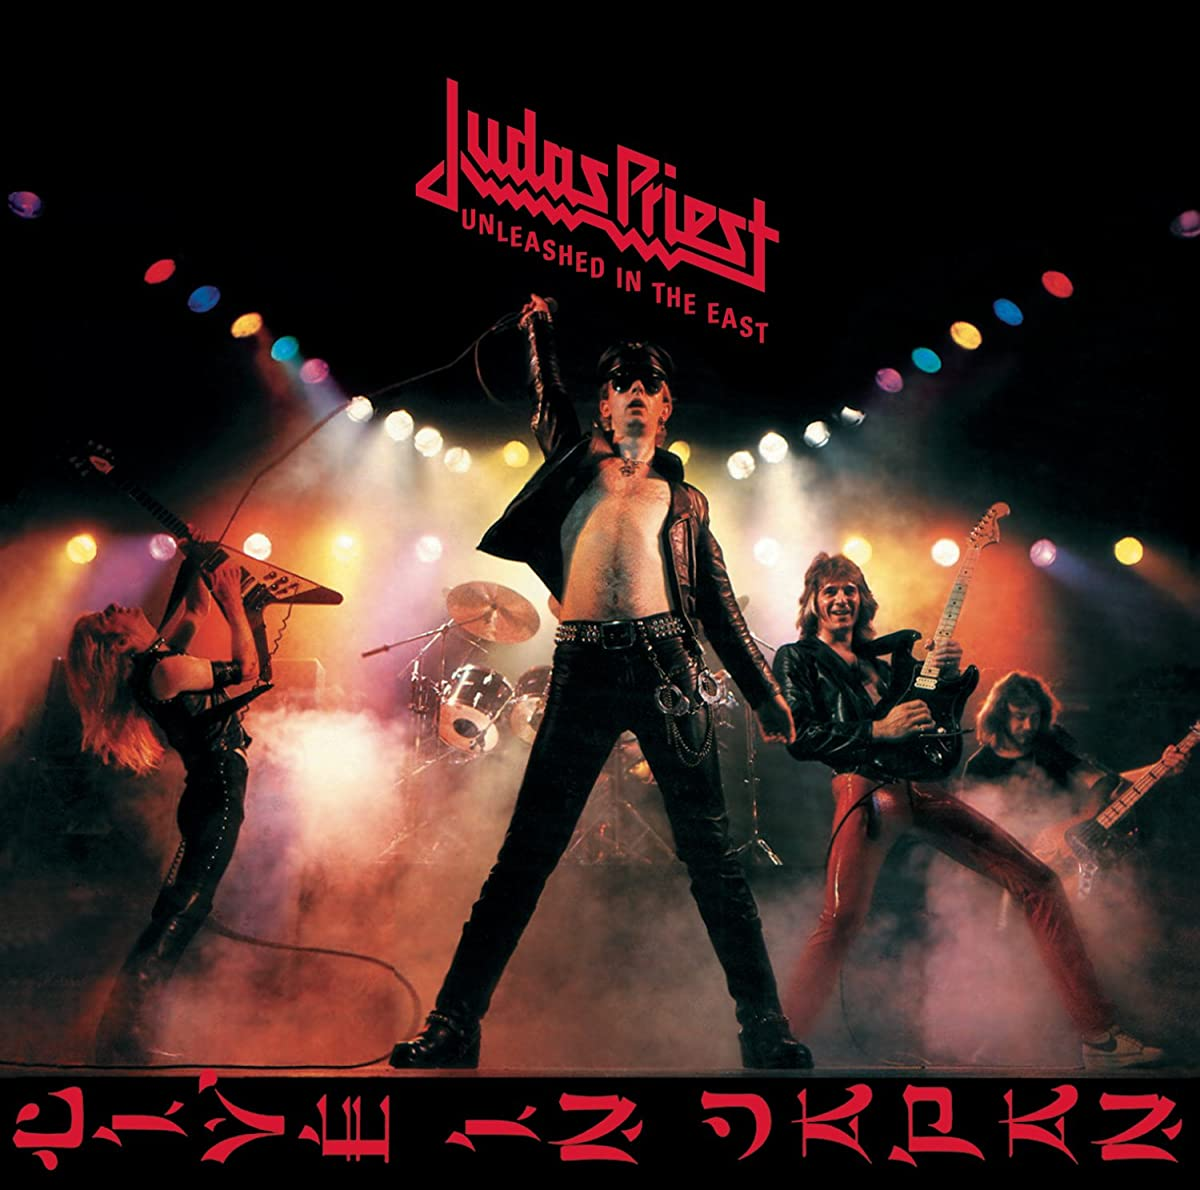 Unleashed in the East by Judas Priest